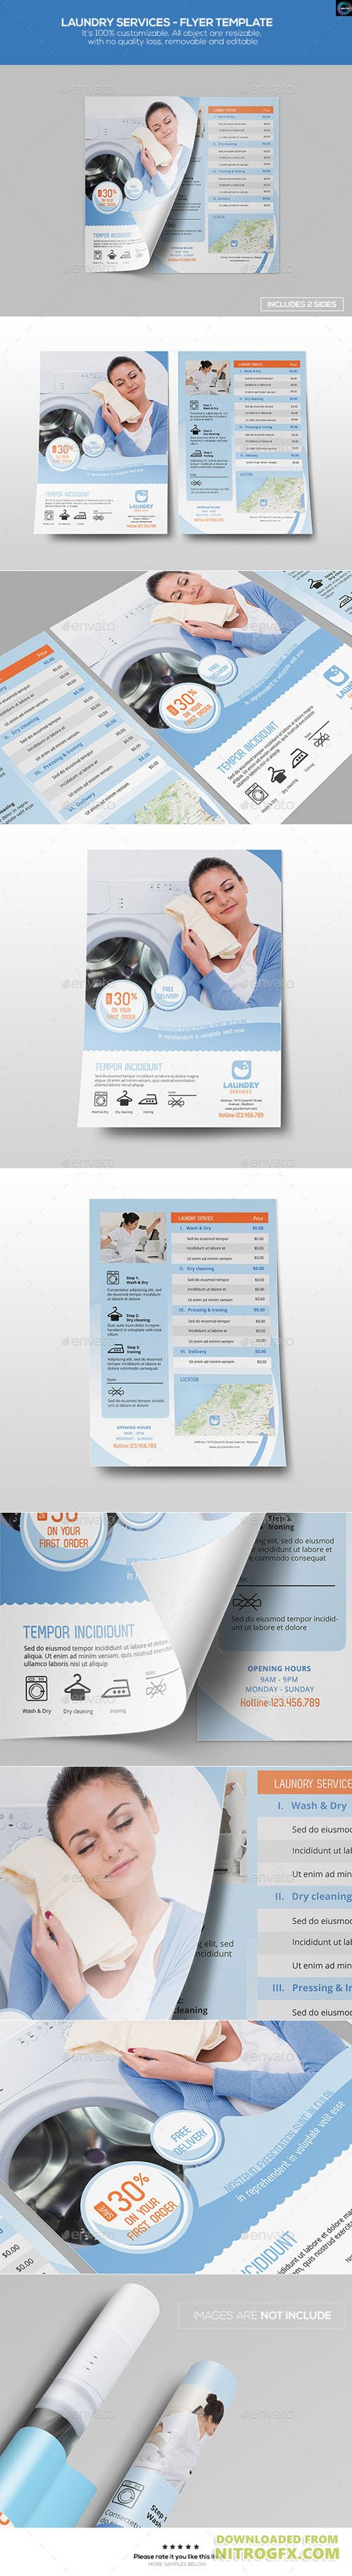 Laundry services flyer template 12597923 nitrogfx for Laundry flyers templates